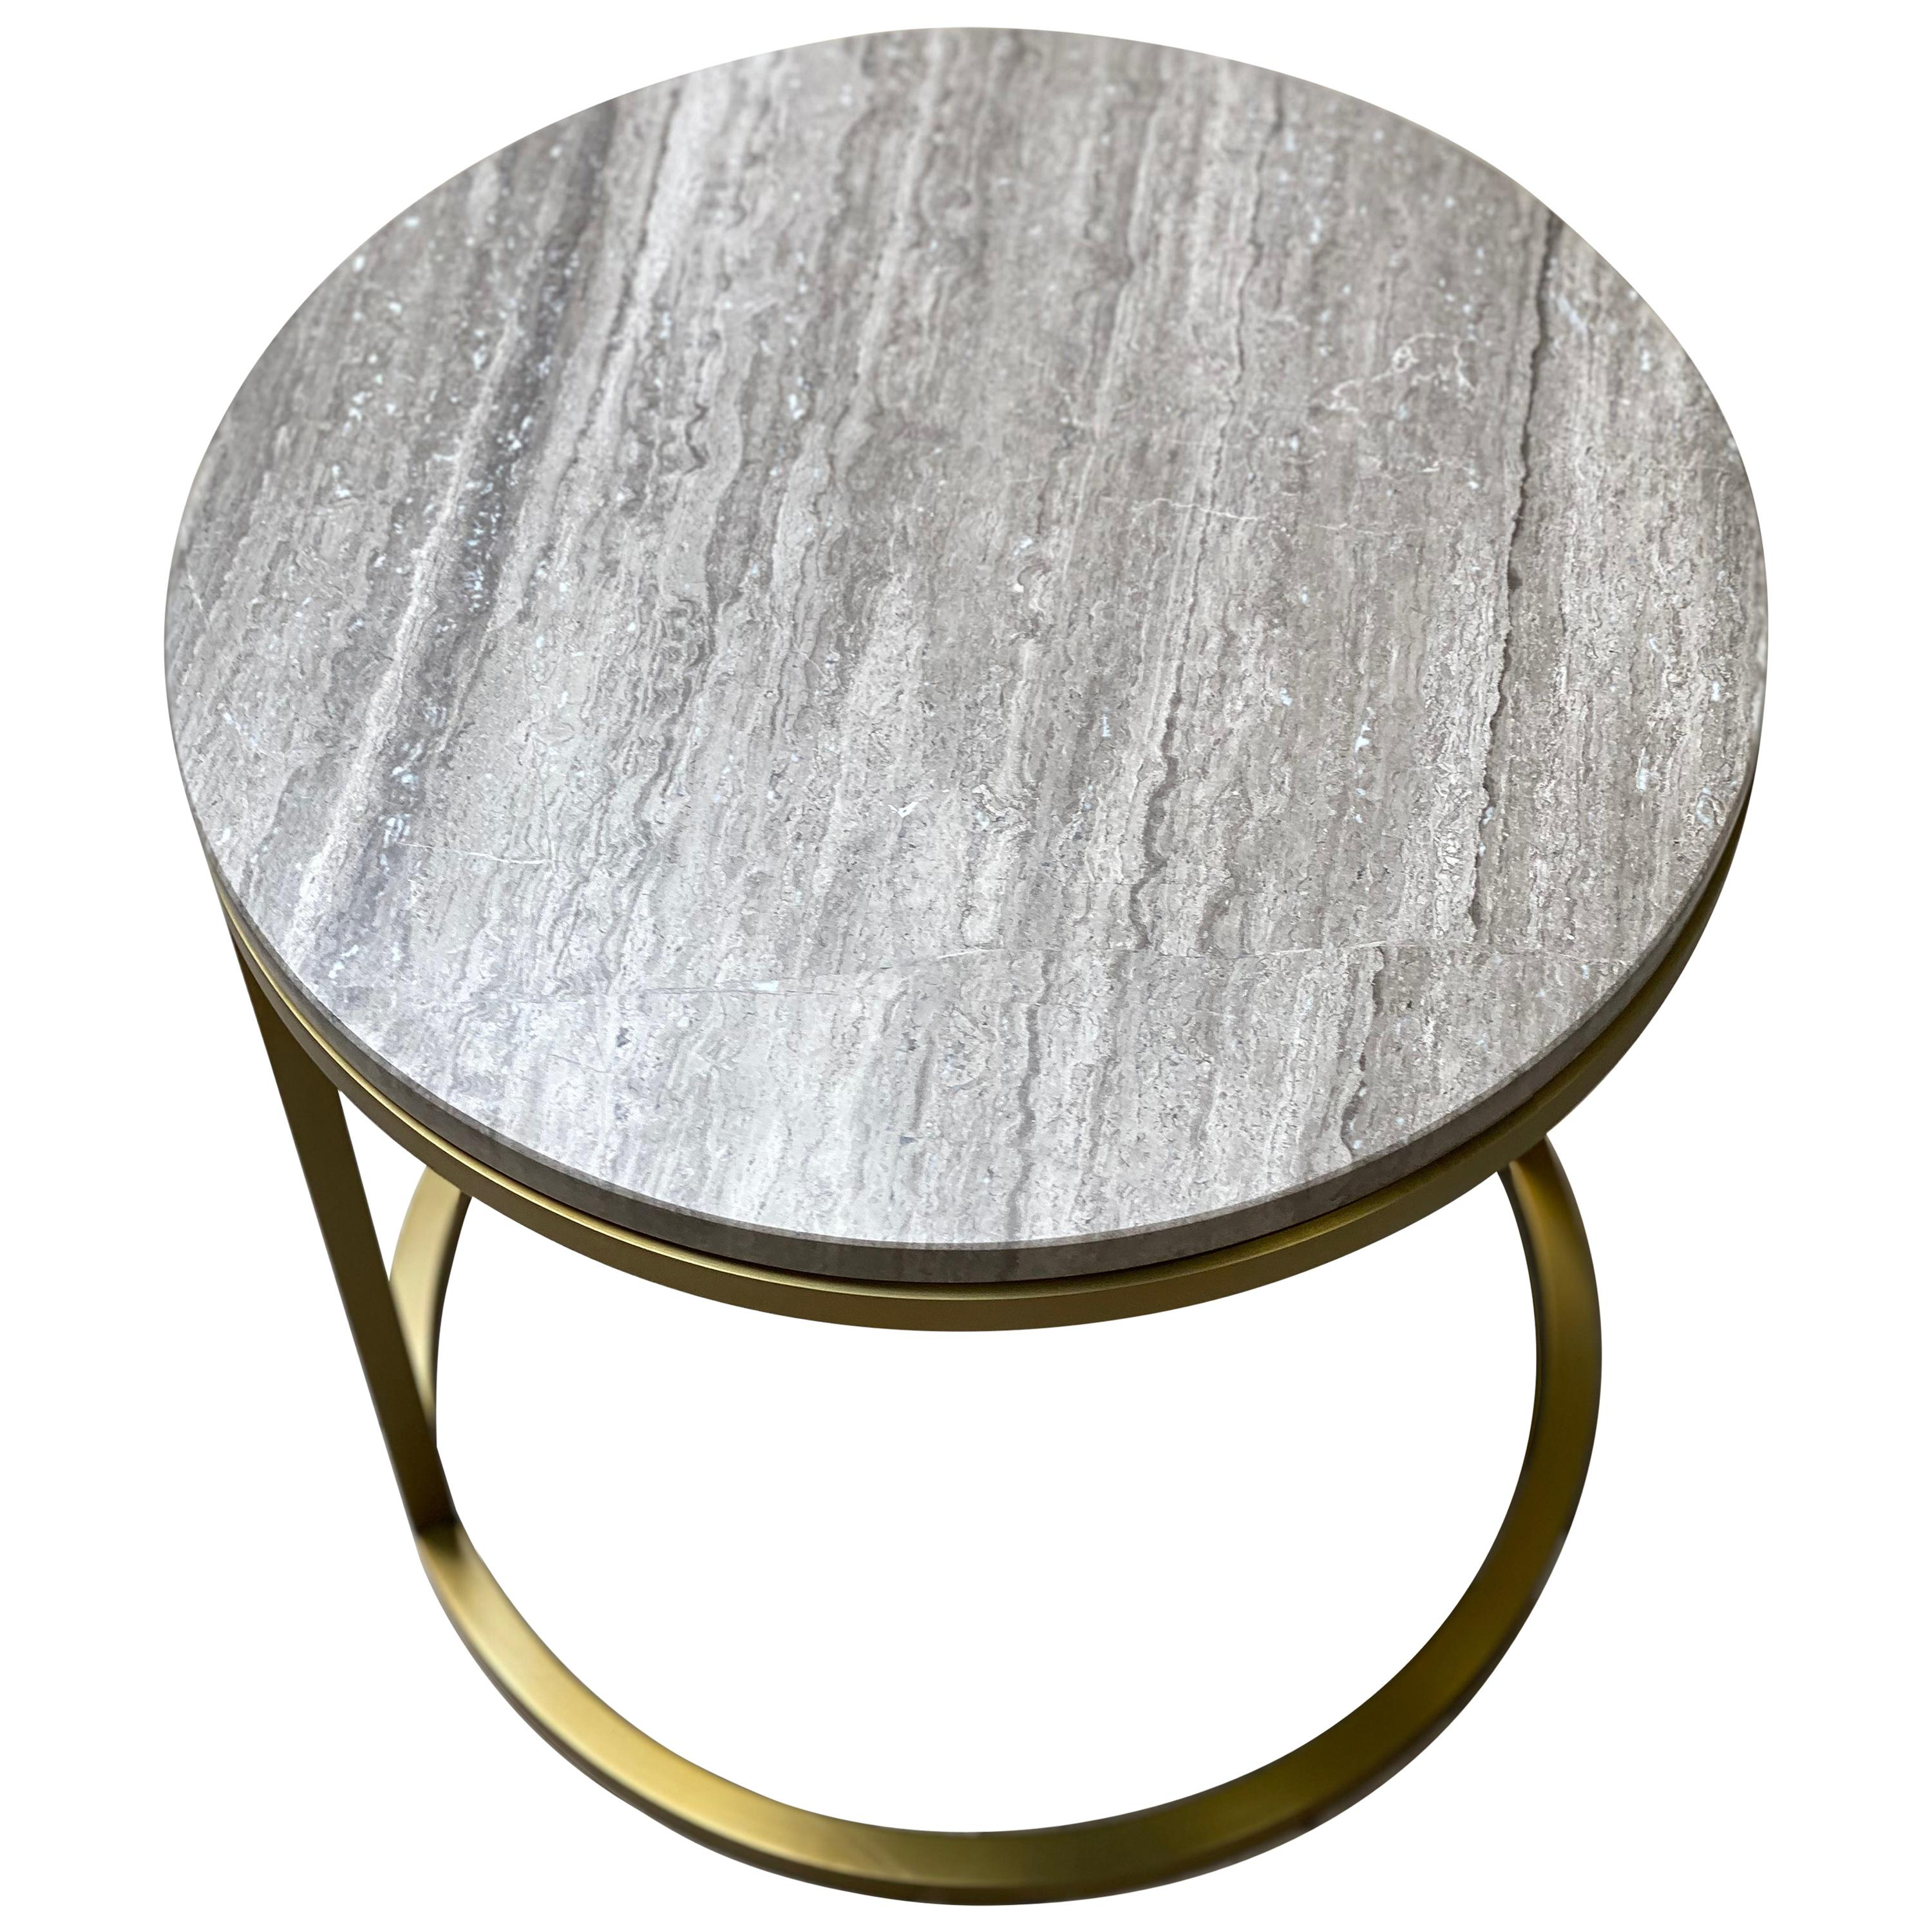 Art Deco Inspired Diana Round Coffee Table in Brass Tinted and Moonstone Marble